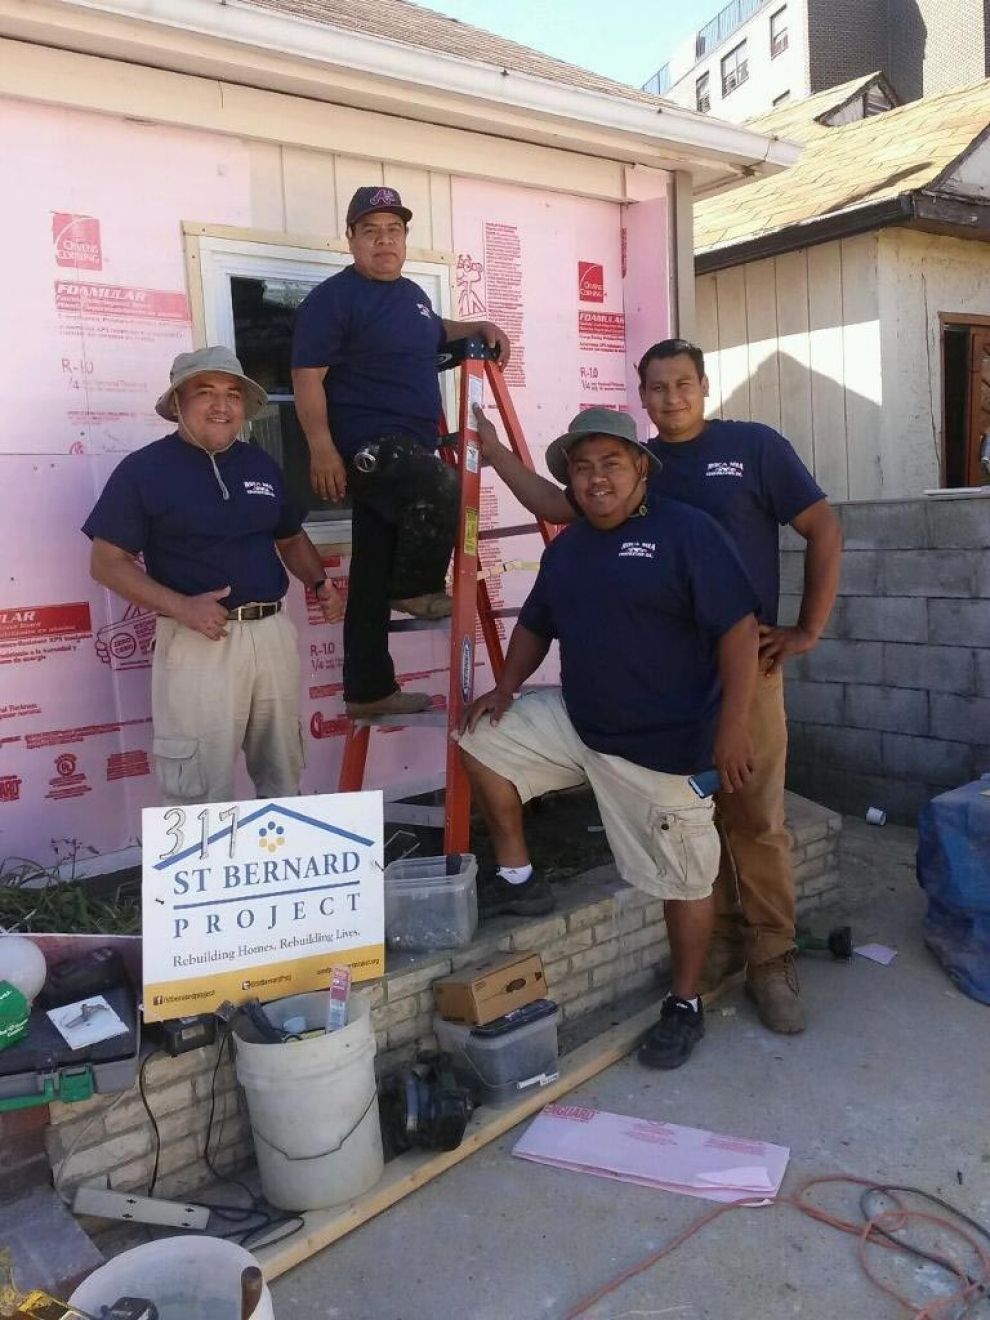 CARLOS LEZAMA, VICTOR HERNANDEZ, HENRY LEZAMA AND MANUEL ESCOBAR OF ROCA MIA CONSTRUCTION FINISHING A JOB IN FAR ROCKAWAY, QUEENS, IN JUNE OF 2014. PHOTO CREDIT: ROCA MIA